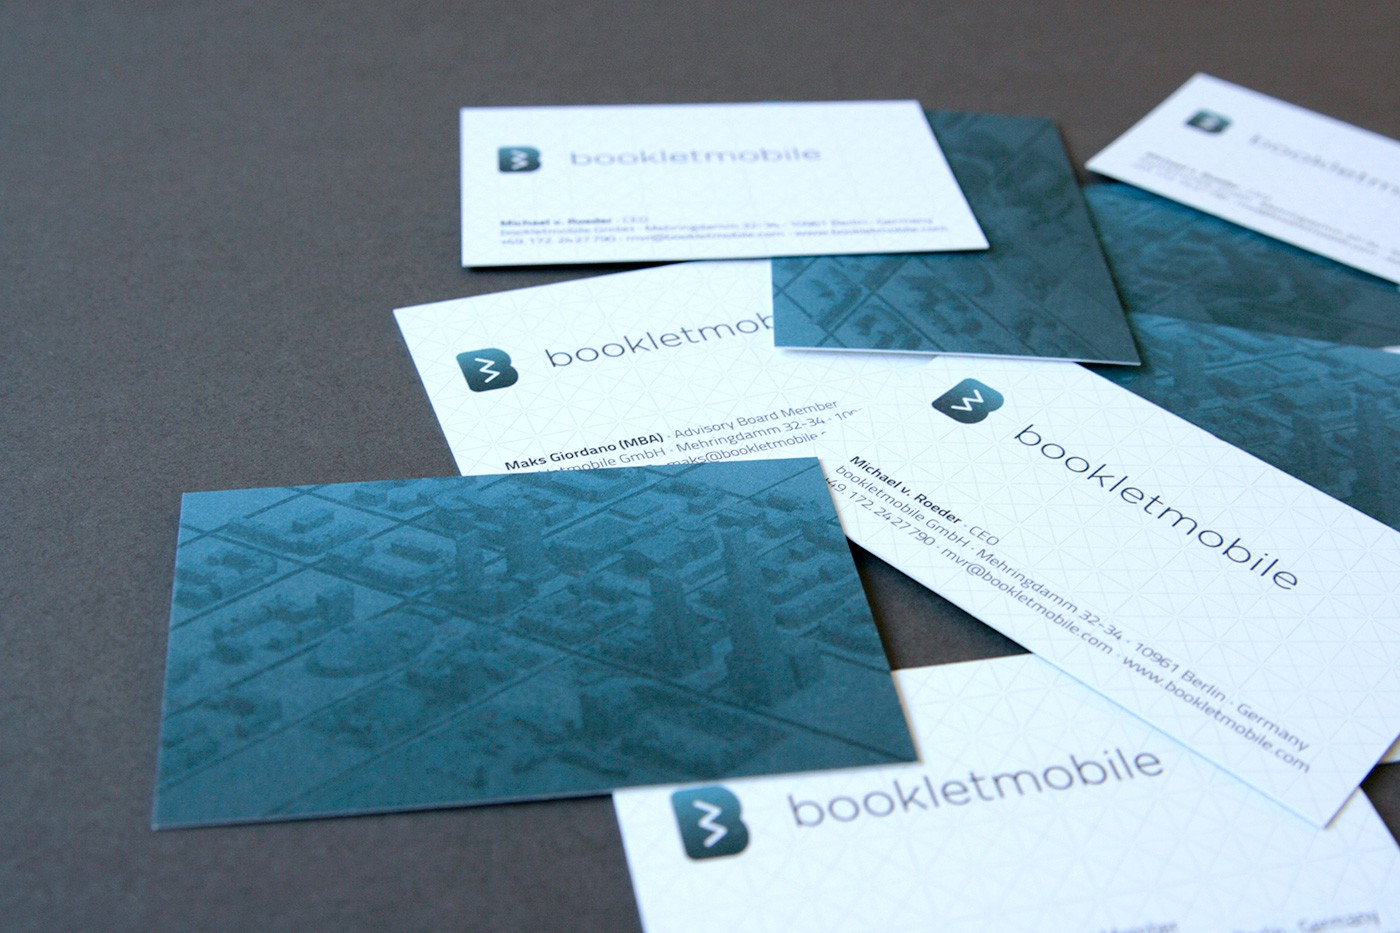 Bookletmobile by upstruct